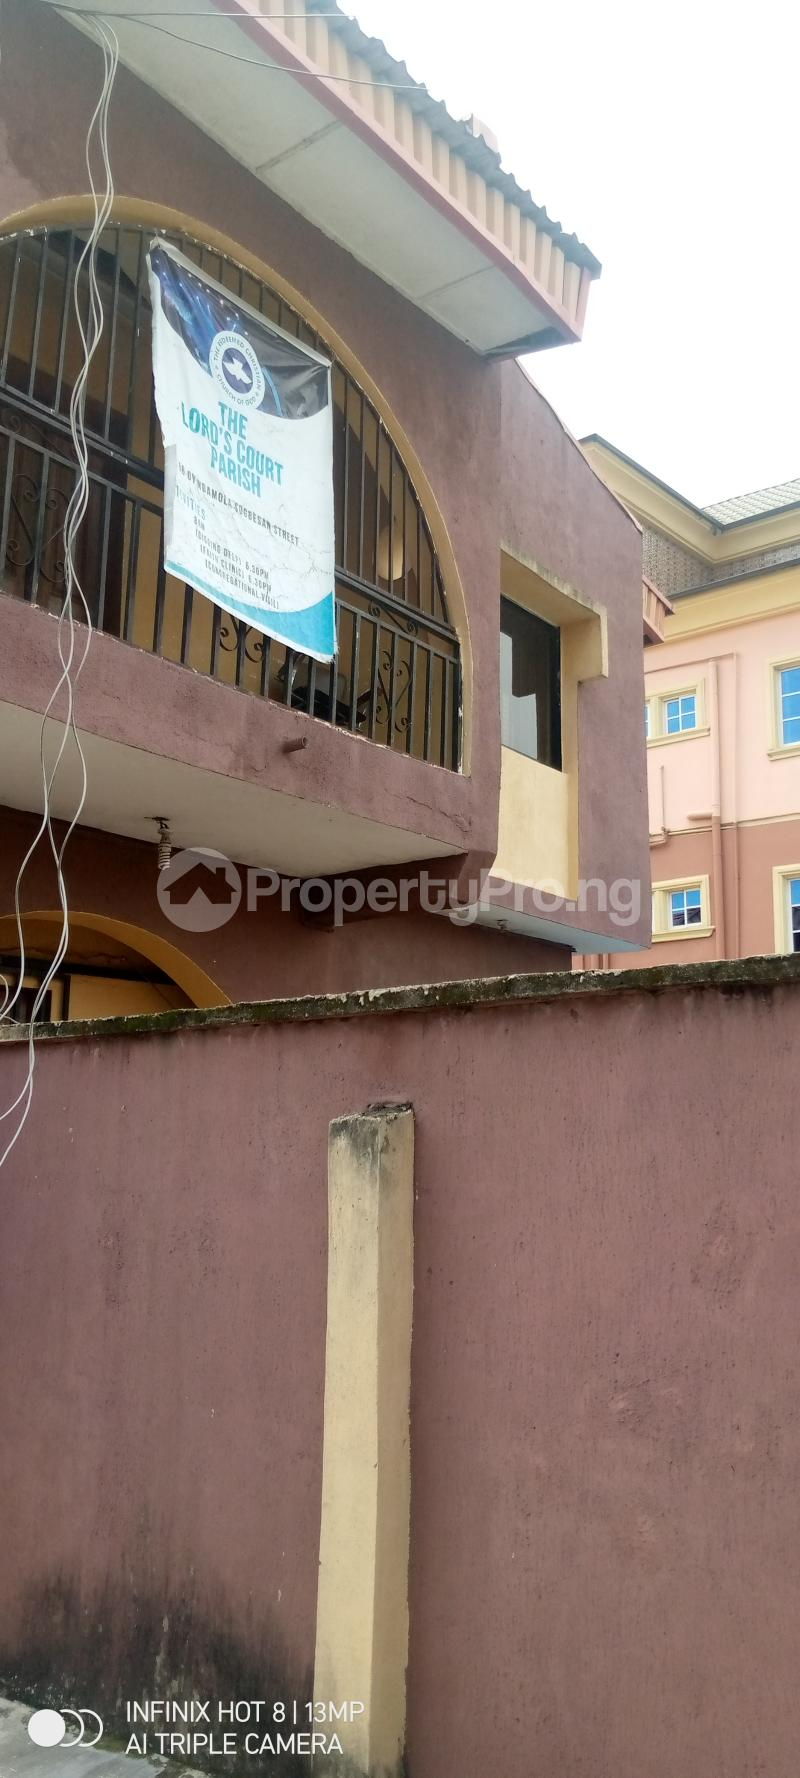 3 bedroom Blocks of Flats House for sale Ago palace way Isolo Lagos - 4